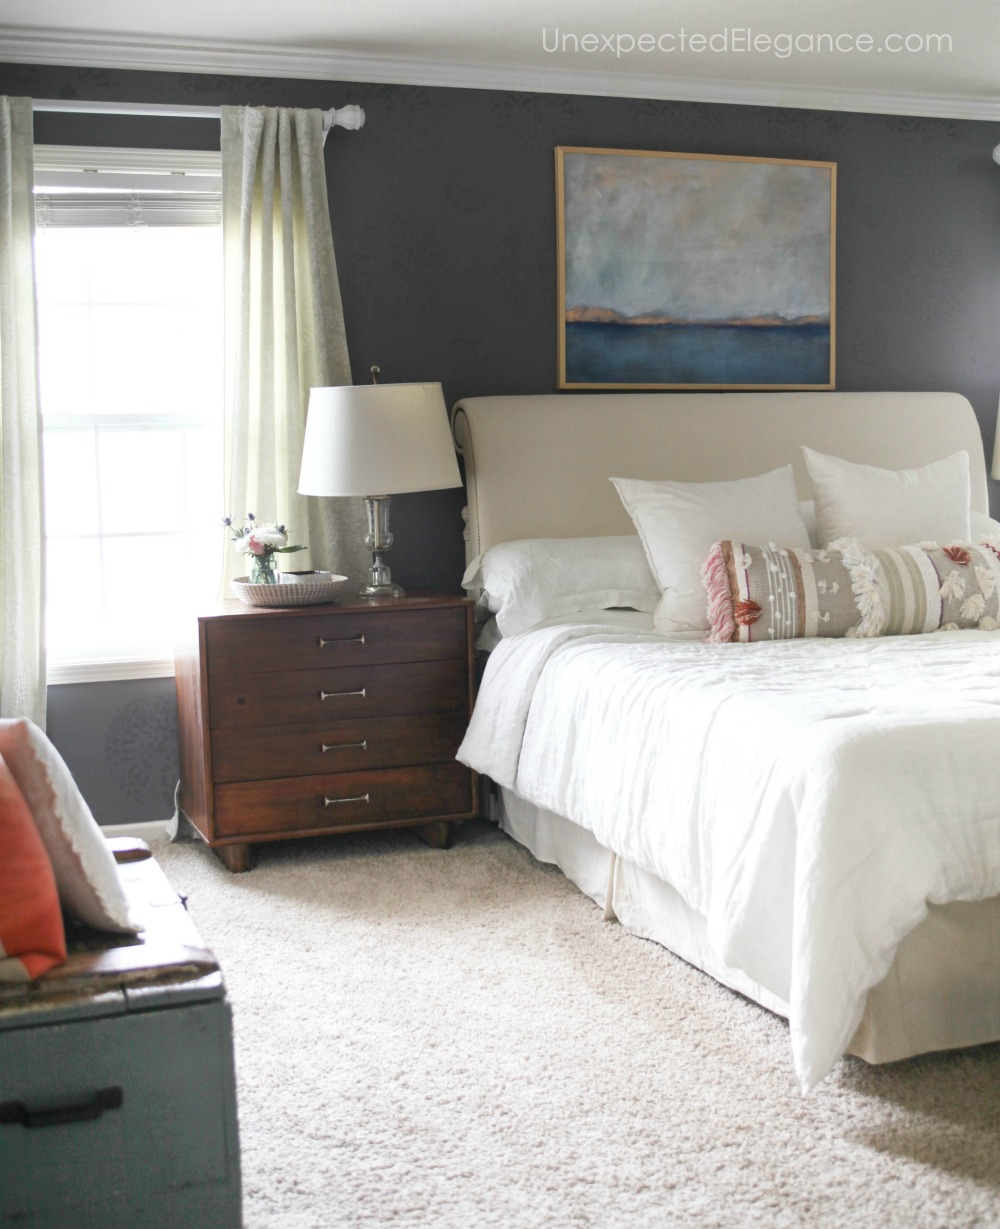 If Your Room Has A Dead End Without A Corner, Check Out This Post: How To  Dead End Crown Molding